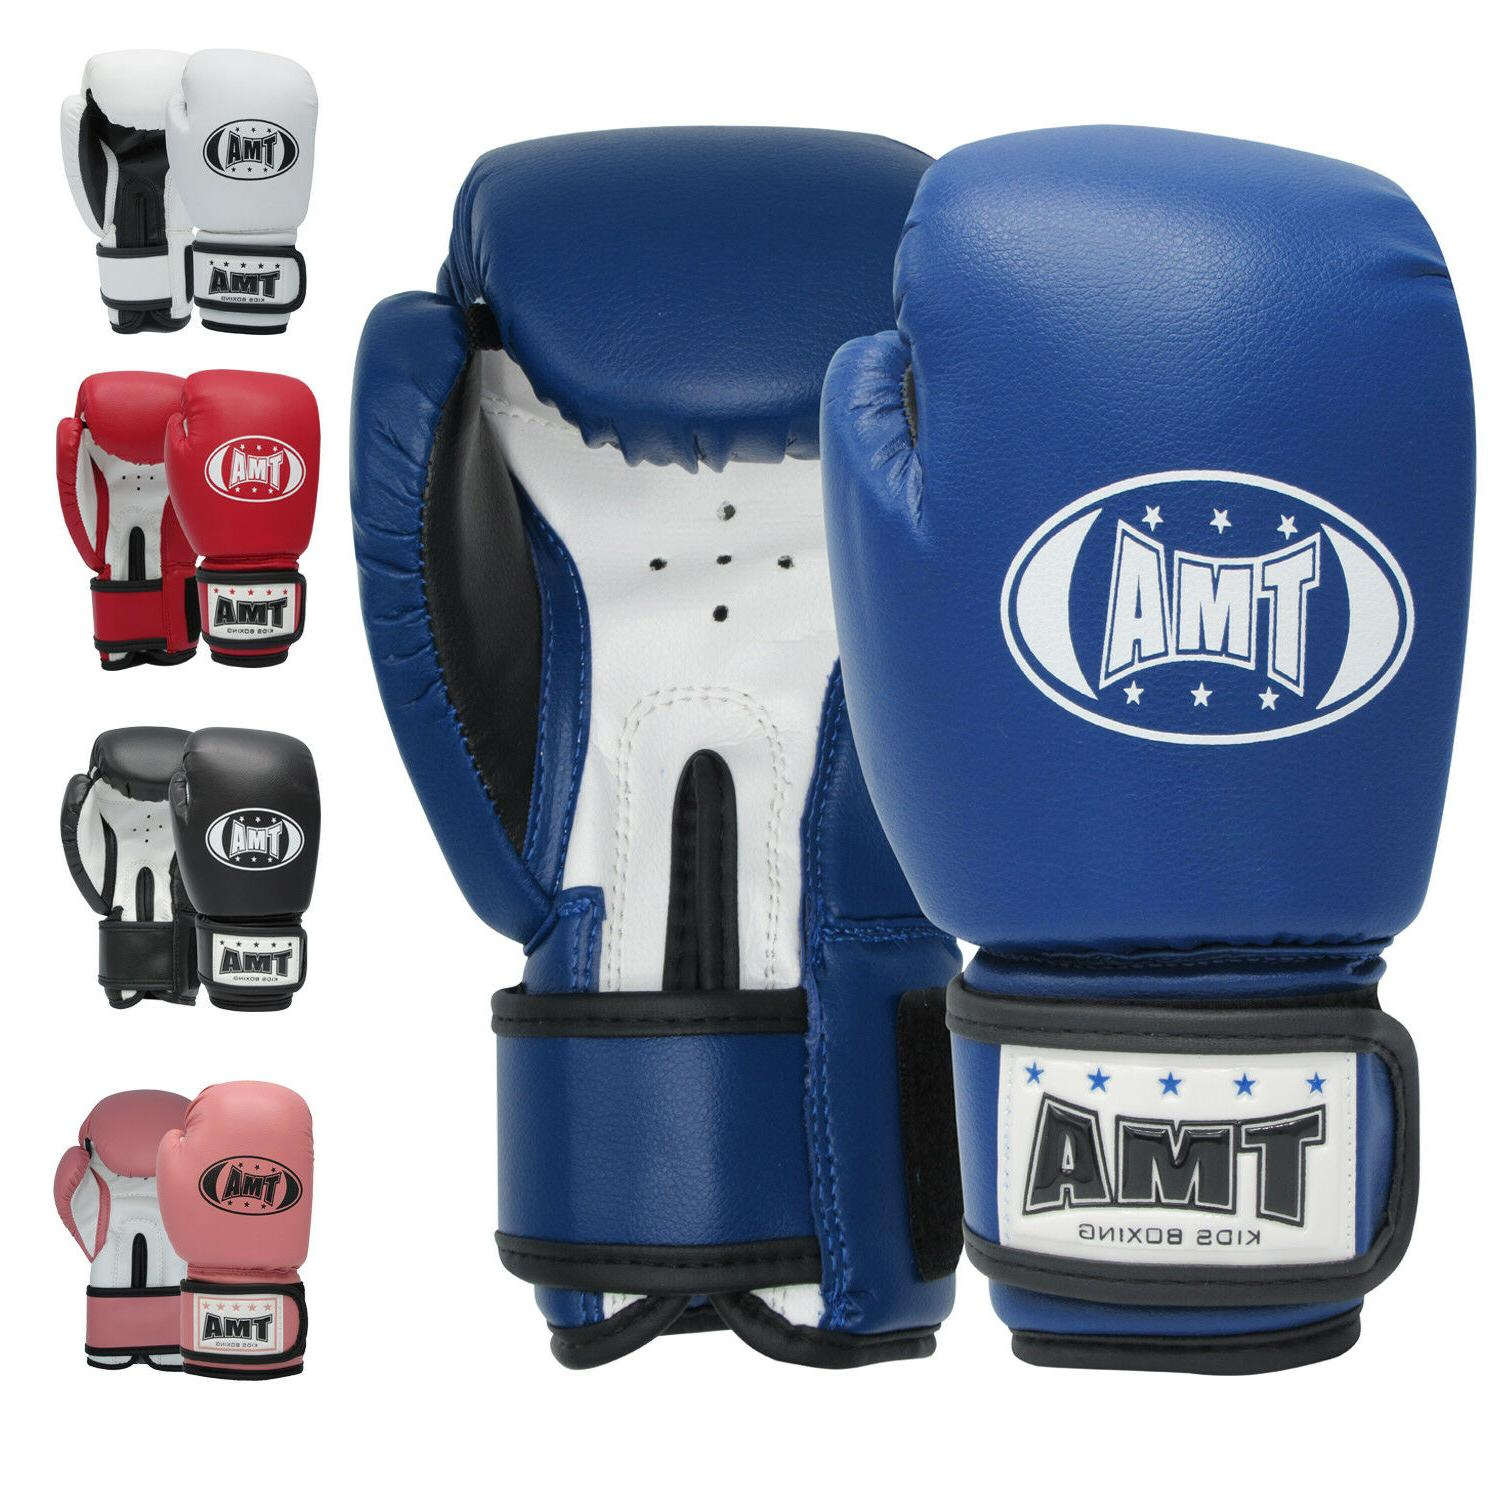 TMA Kids Boxing gloves best for kickboxing, Martial Arts, MM